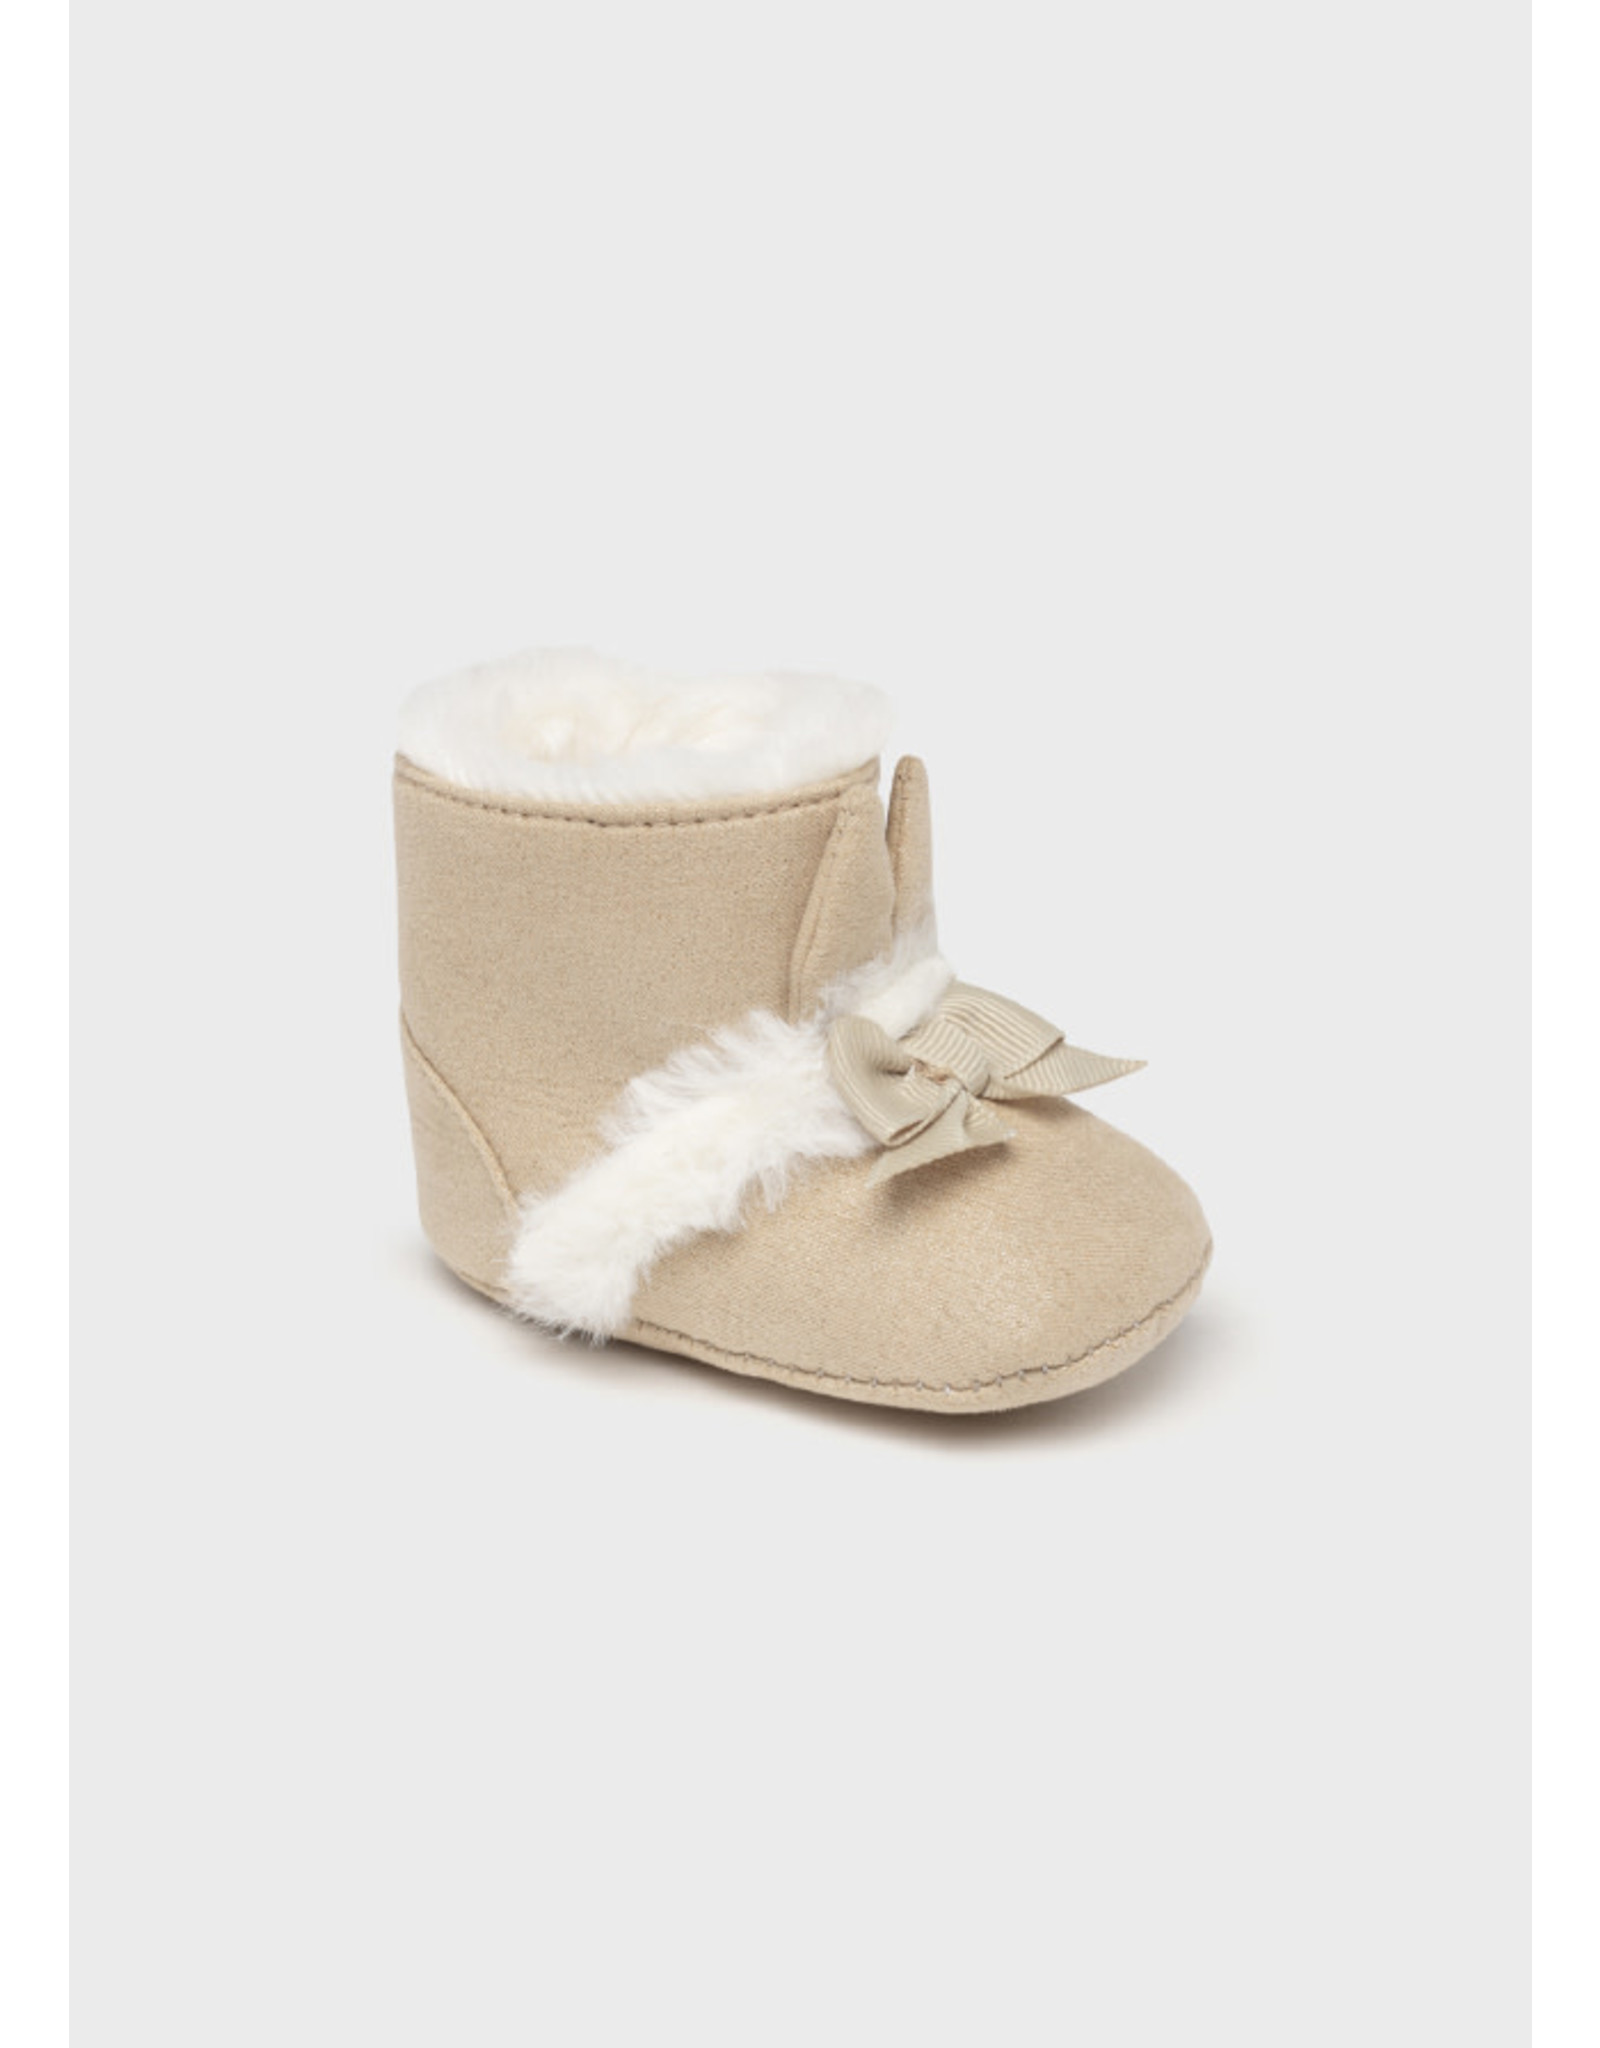 Mayoral Beige Faux Fur Boots w/Bow